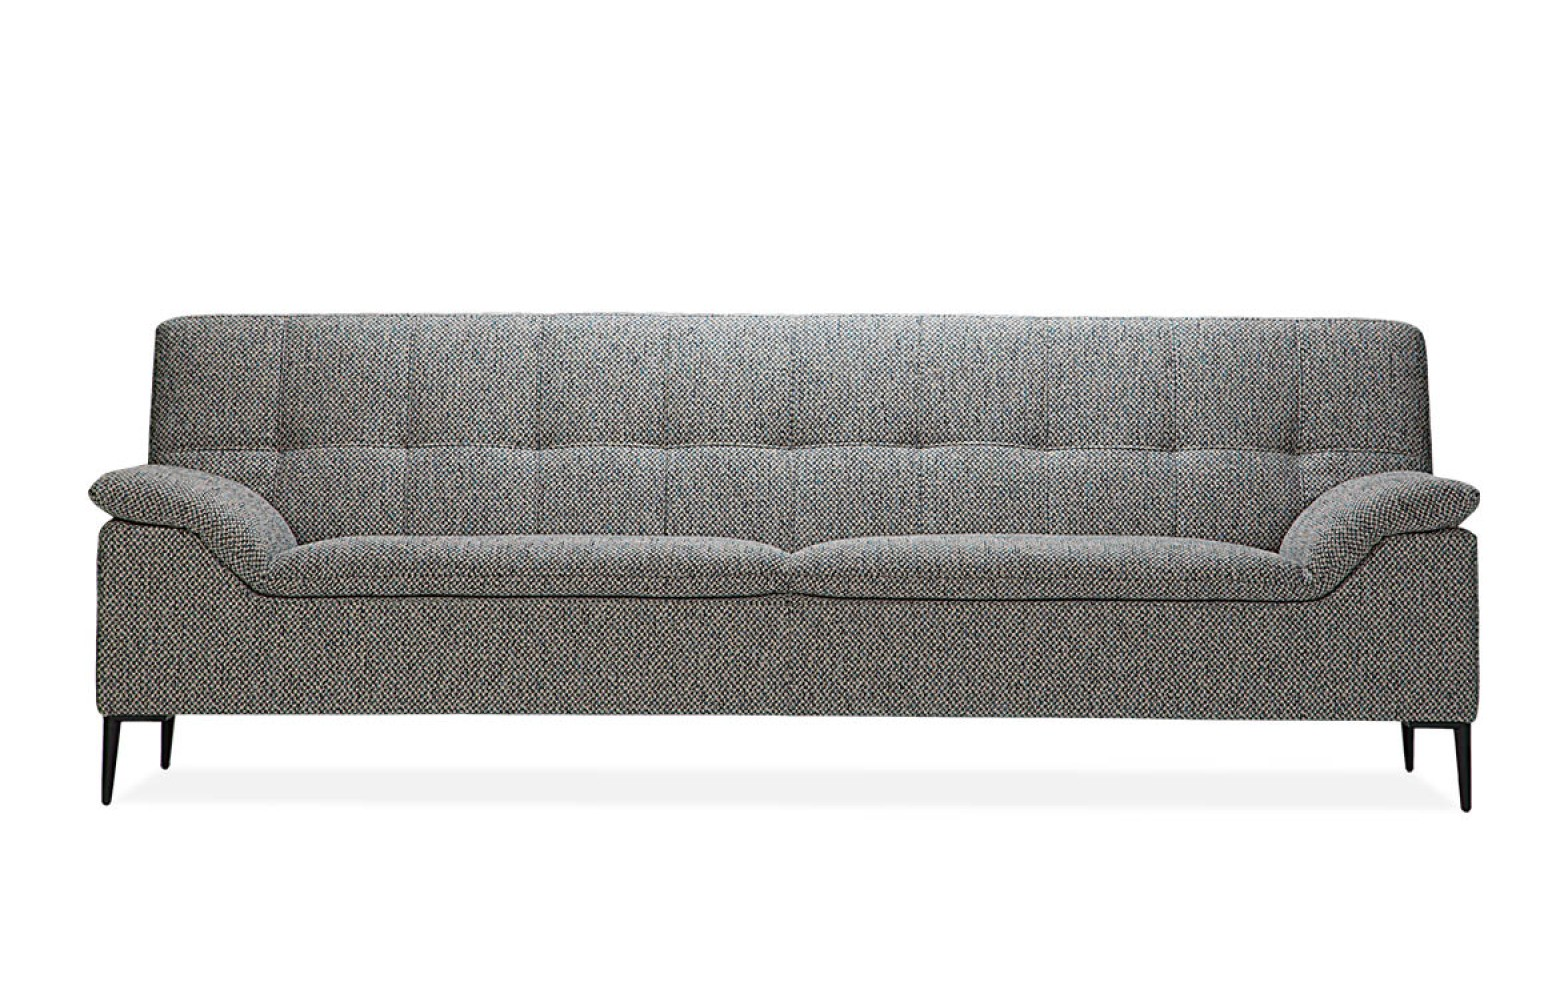 pocci sofas online outlet who 39 s perfect. Black Bedroom Furniture Sets. Home Design Ideas